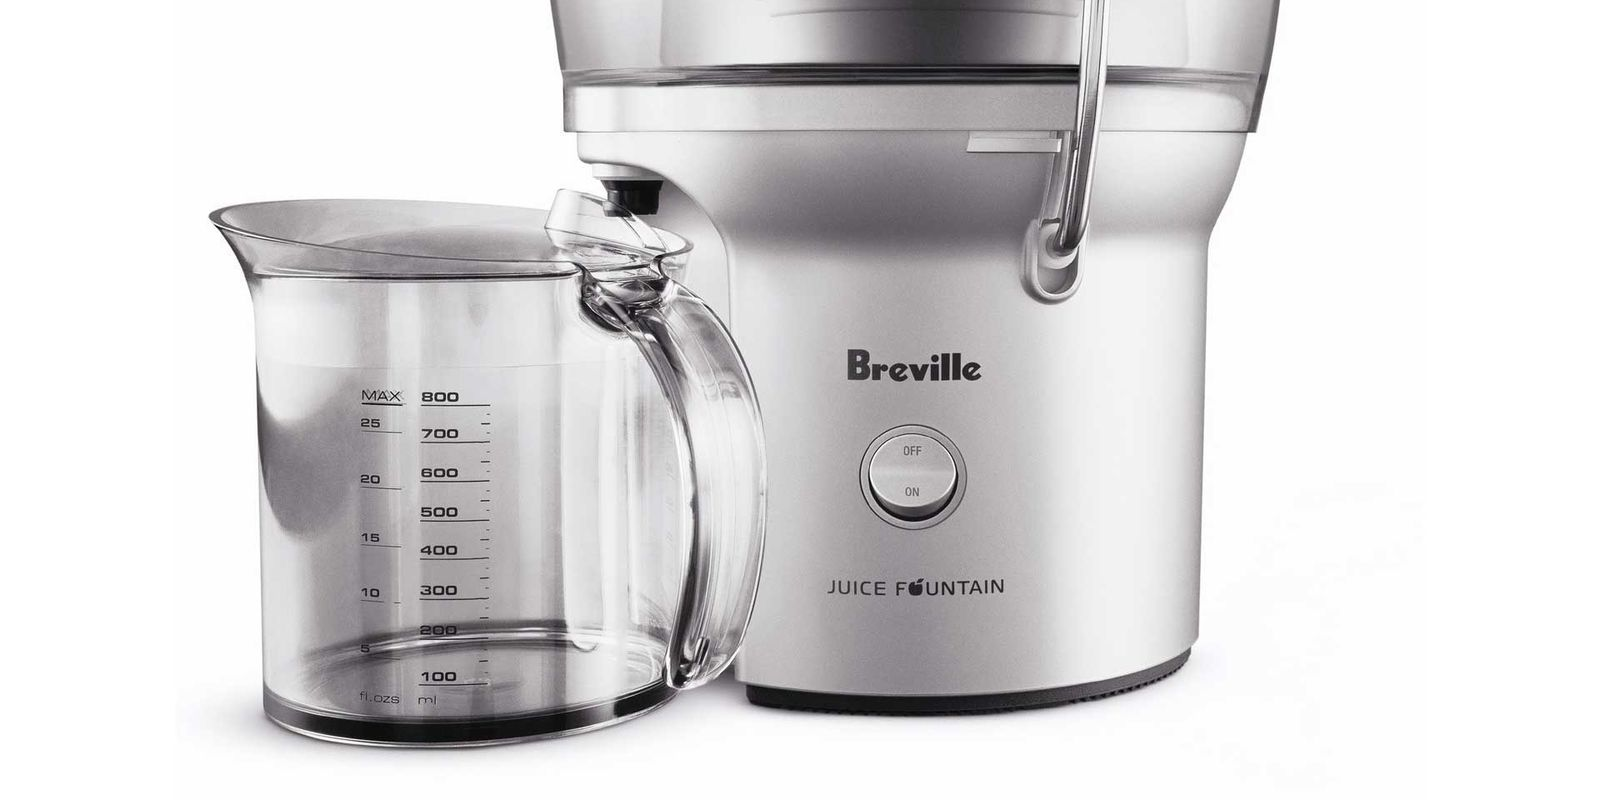 Breville Slow Juicer Parts : Breville Juicer. Breville Je98xl Juice Fountain Plus 850. 10 Wellness Products To Help You Stick ...